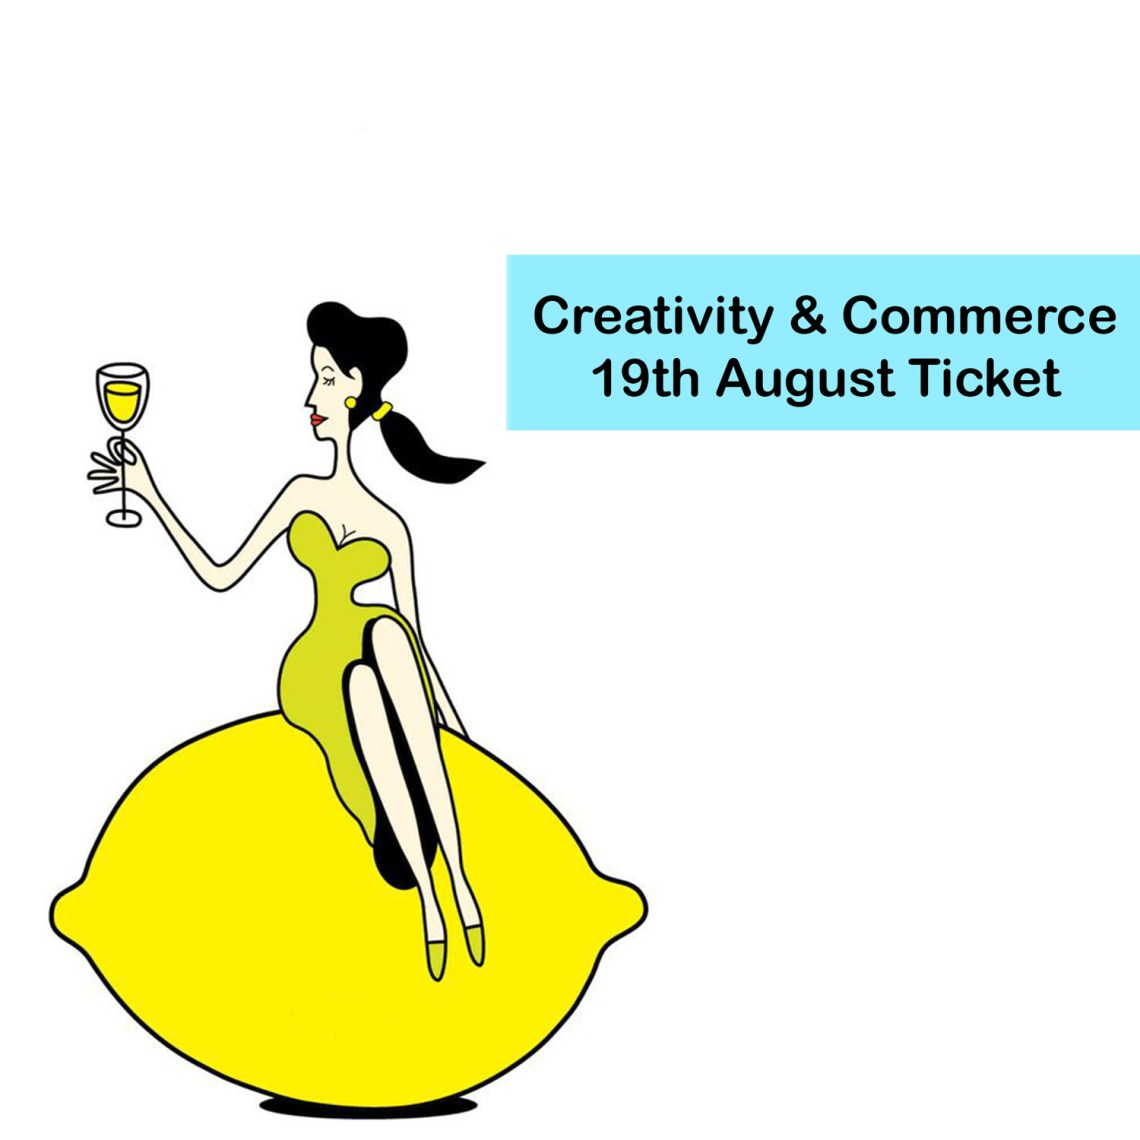 Creativity and Commerce 19th of August Ticket